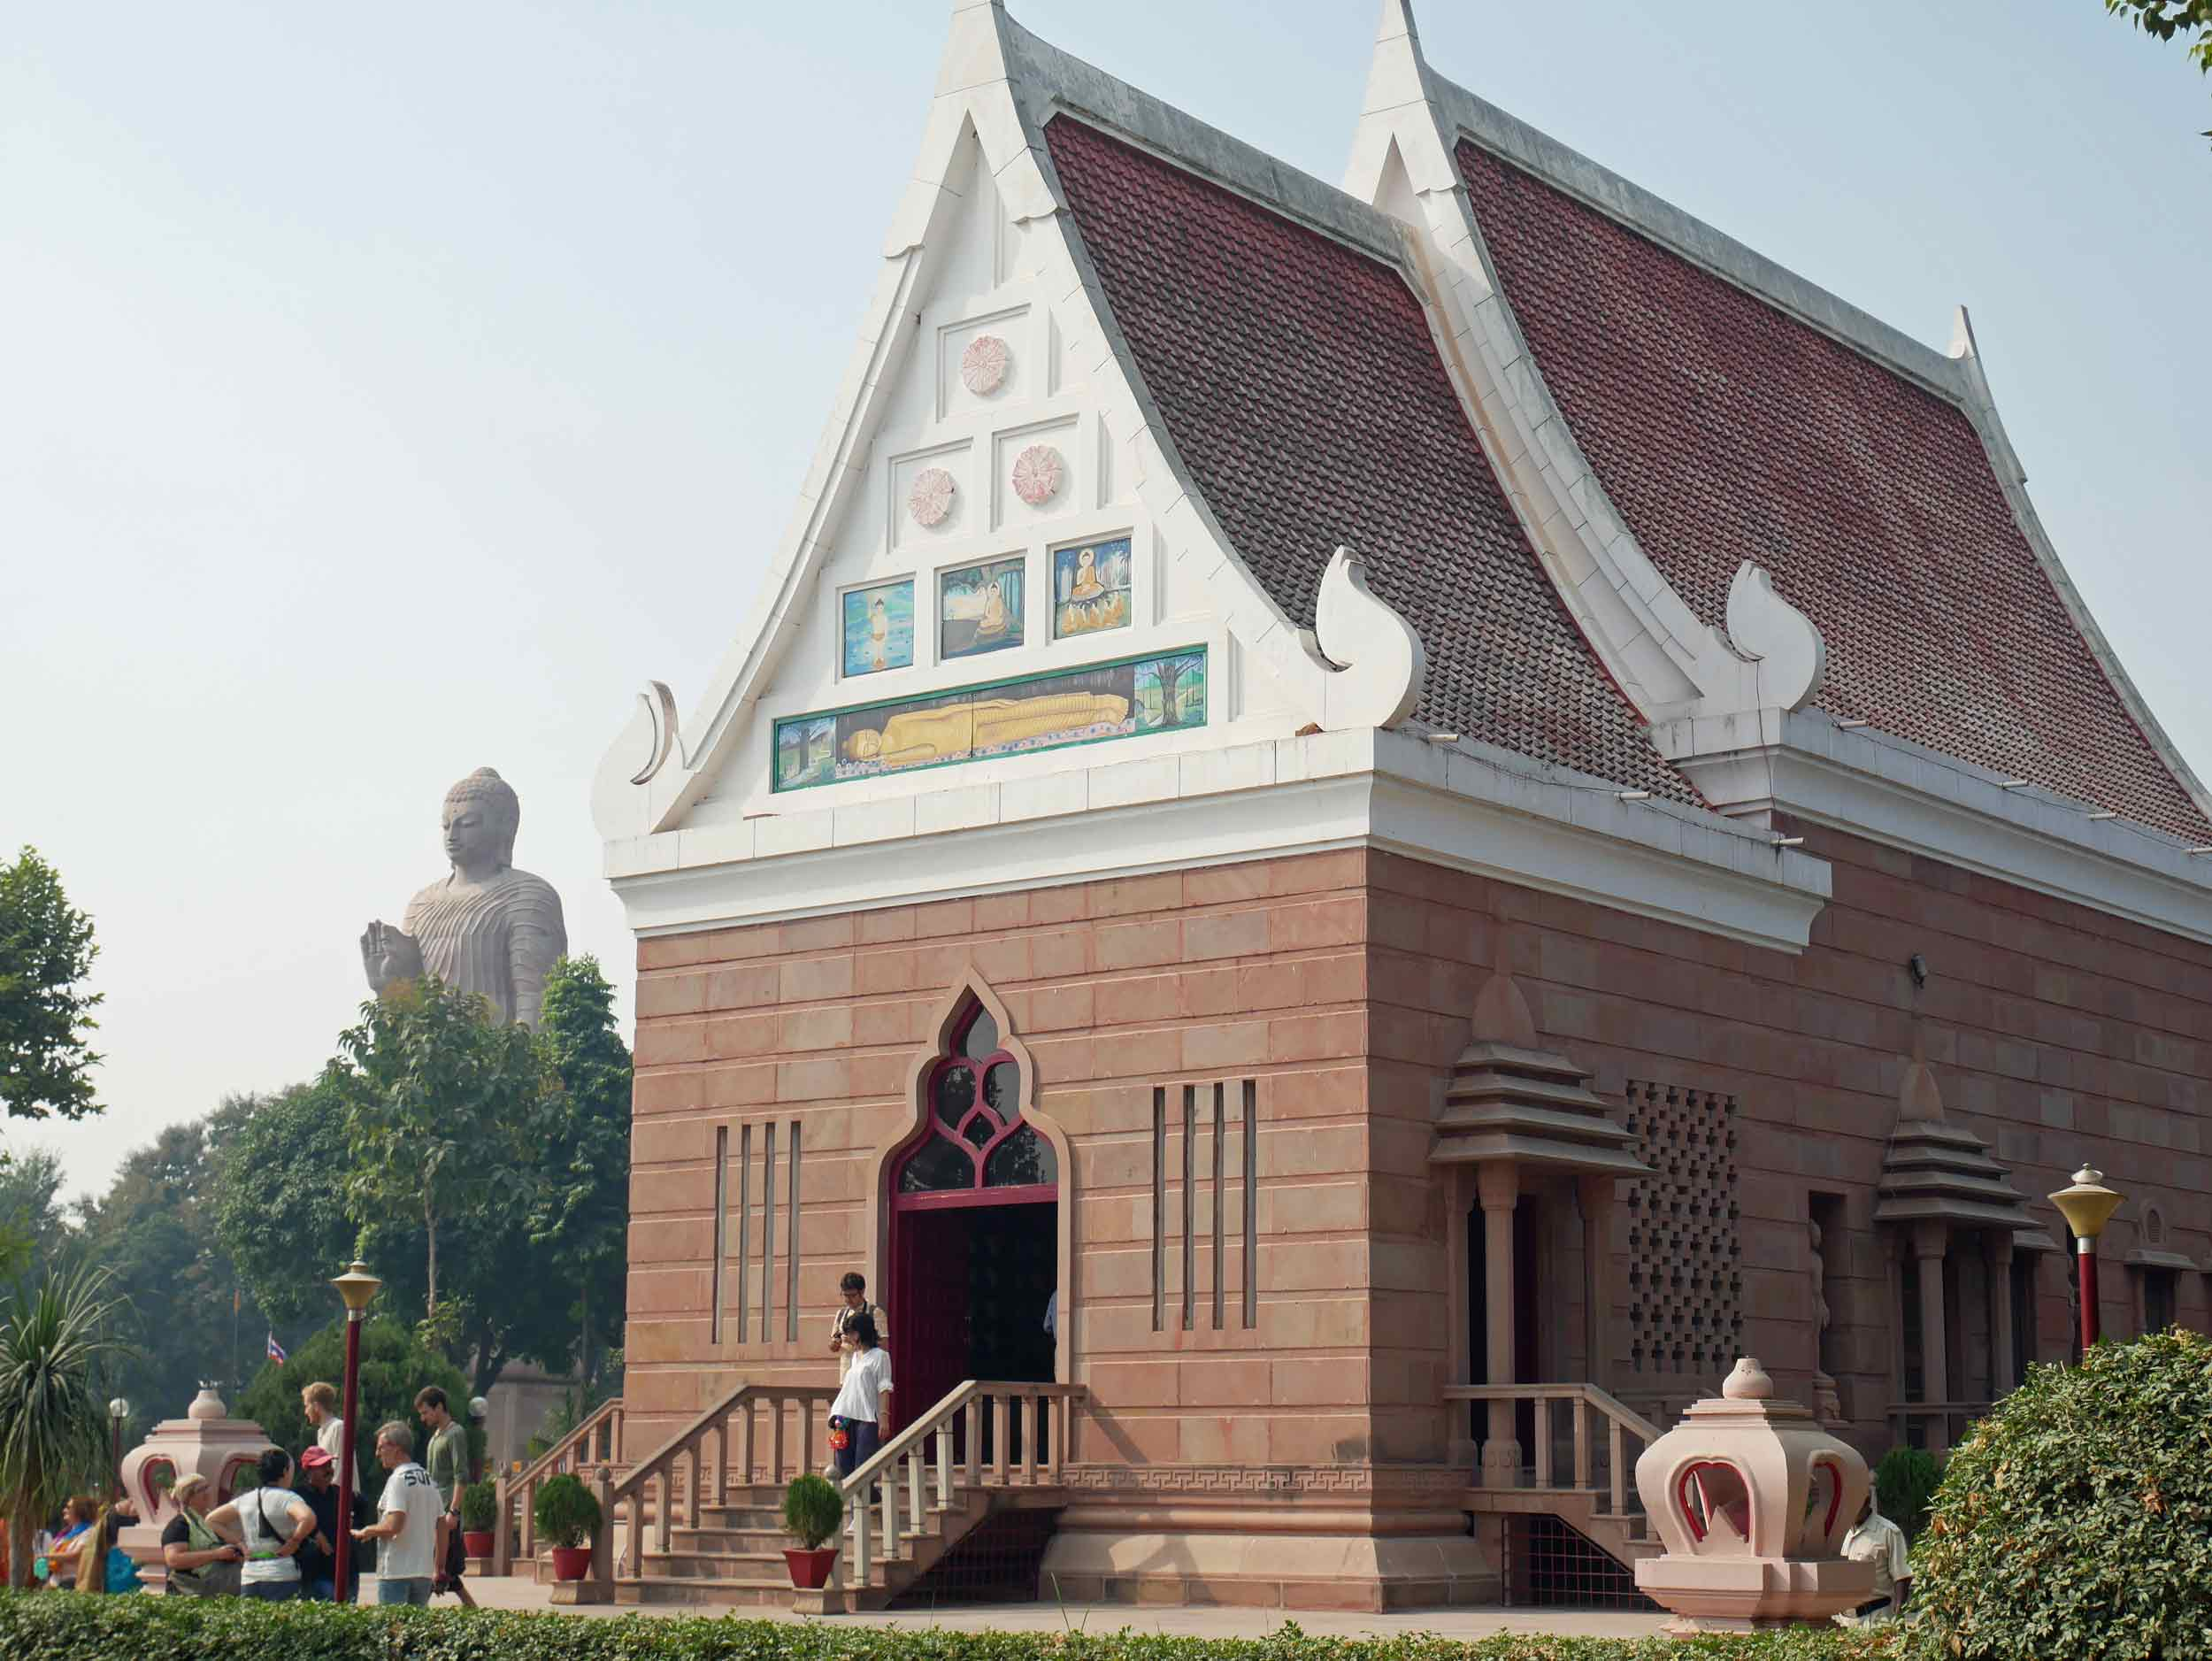 The Thai temple and giant Buddha statue at Sarnath, believed to be the holy site of the Buddha's first teaching after receiving enlightenment (Nov 17).